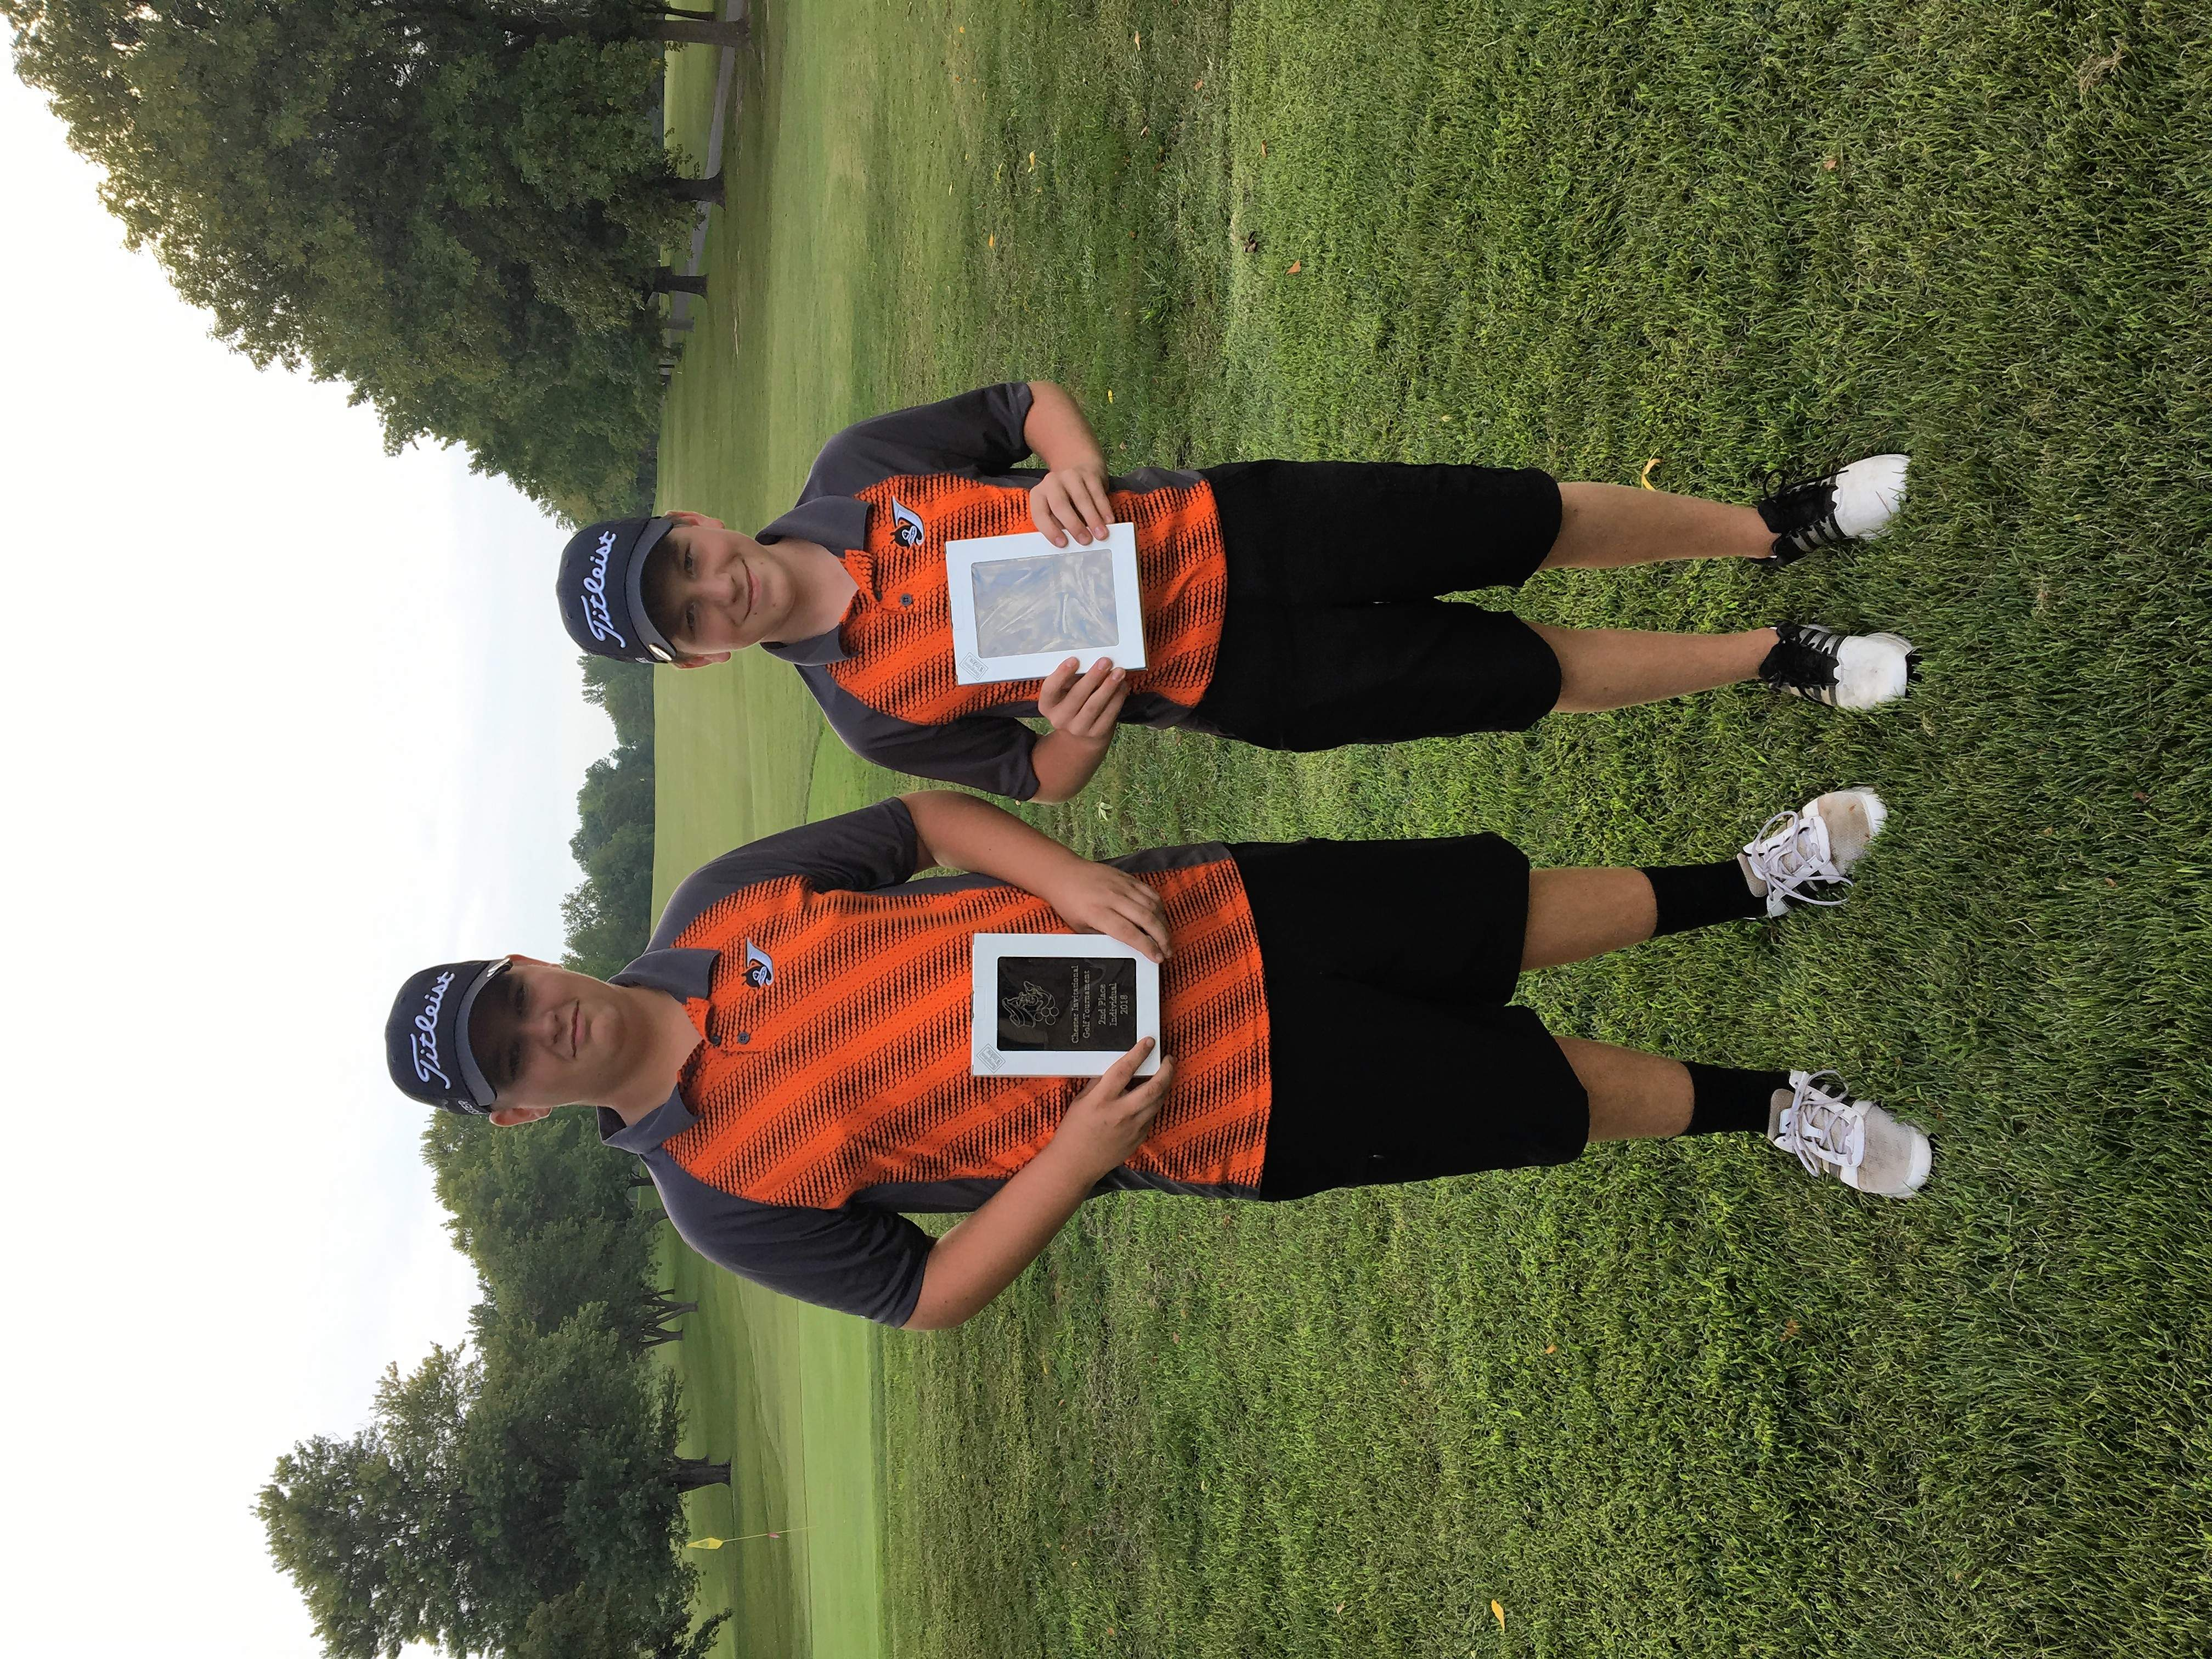 Chester golfers Jaden Mott, left, and Jarrett James display the plaques they won by finishing in the Top-5 golfers at the 2018 Chester Invitational Golf Tournament Aug. 30. For the 18-hole match, Mott shot 85 to tie for 5th and James shot 78 to tie for runner-up in the event.